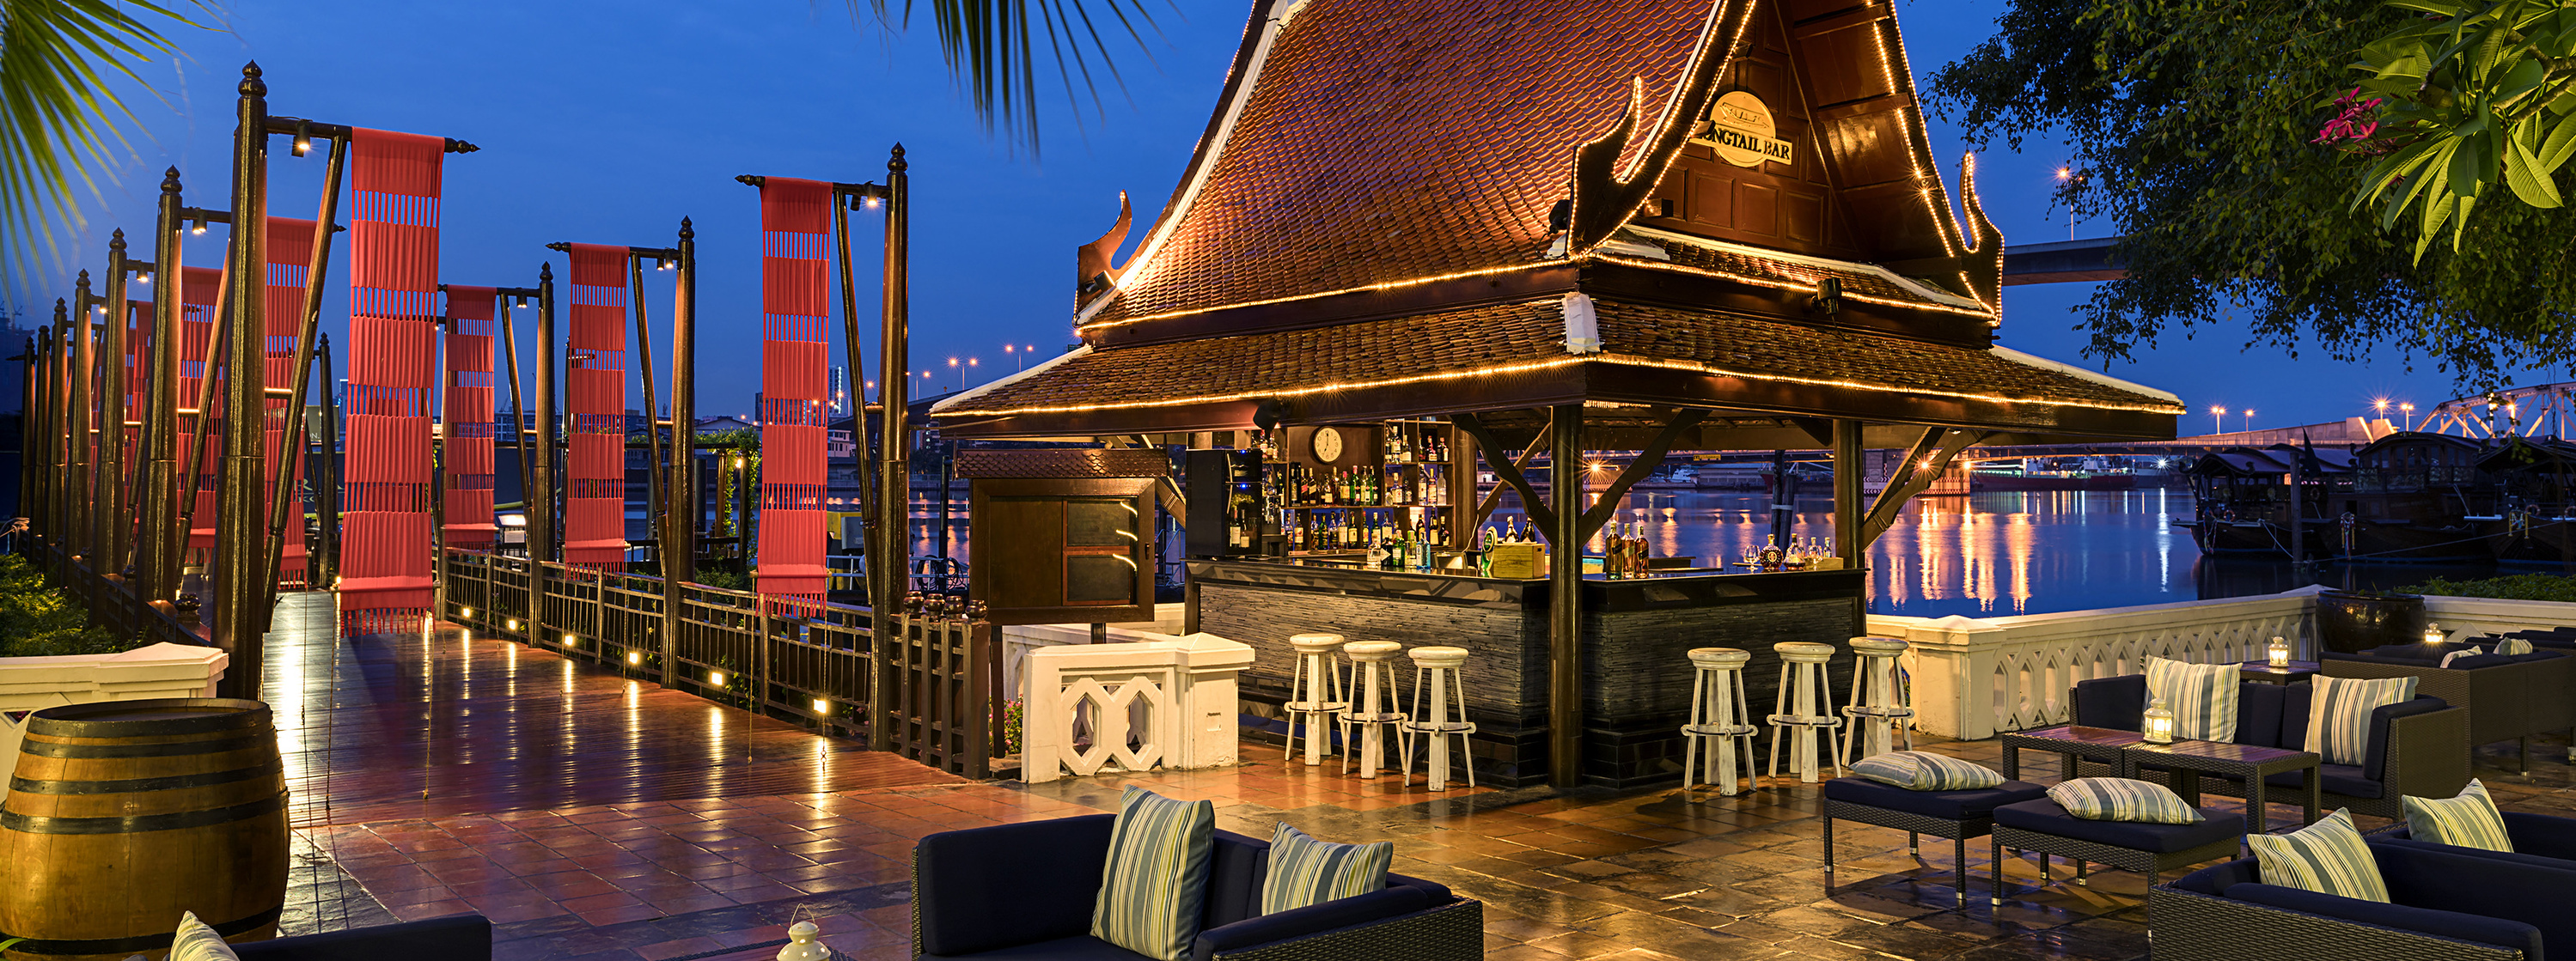 Riverside-Longtail-Bar-Bangkok